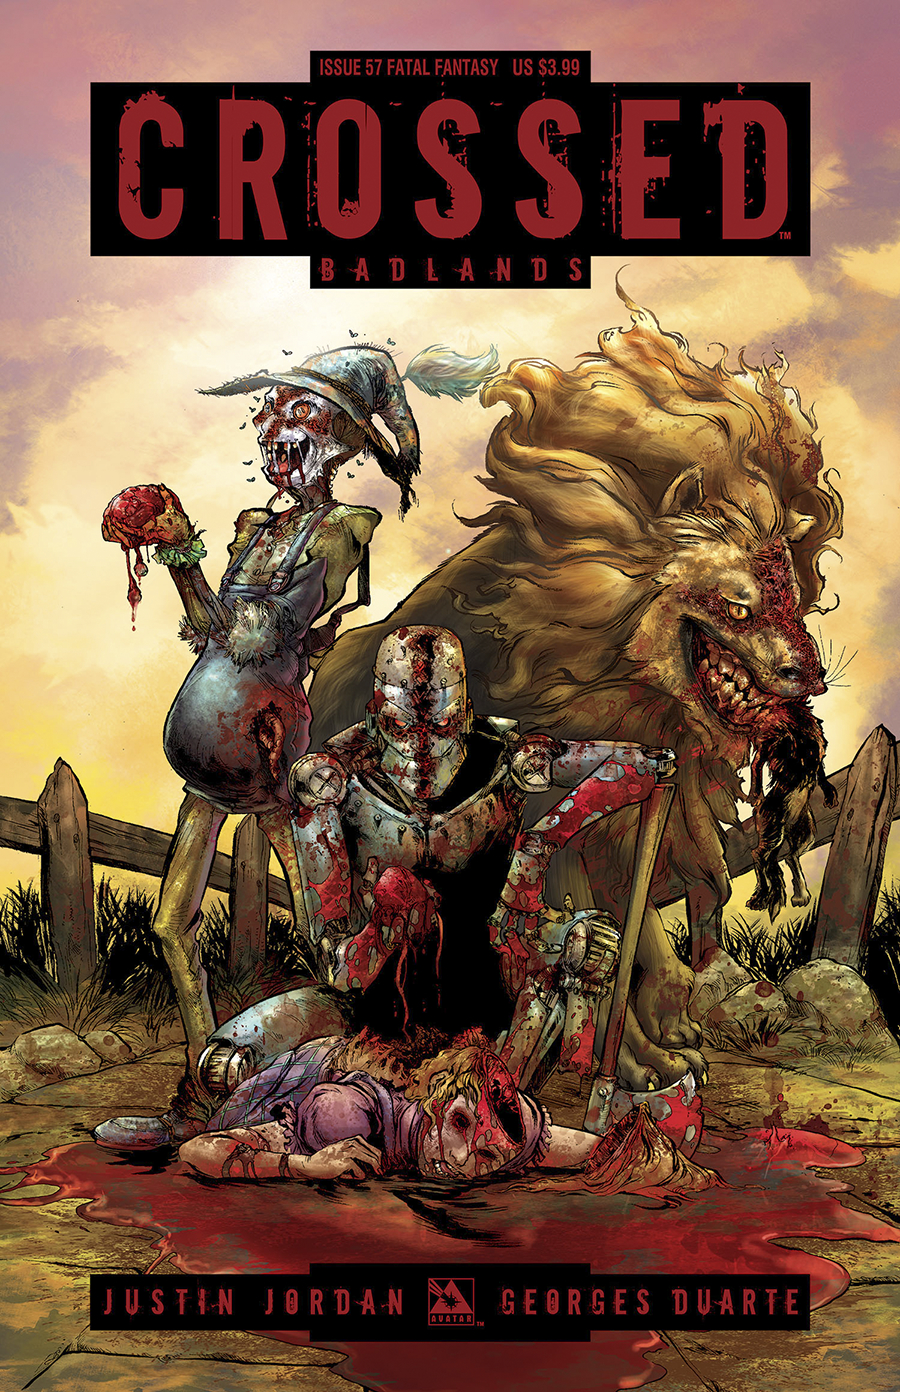 CROSSED BADLANDS #57 FATAL FANTASY CVR